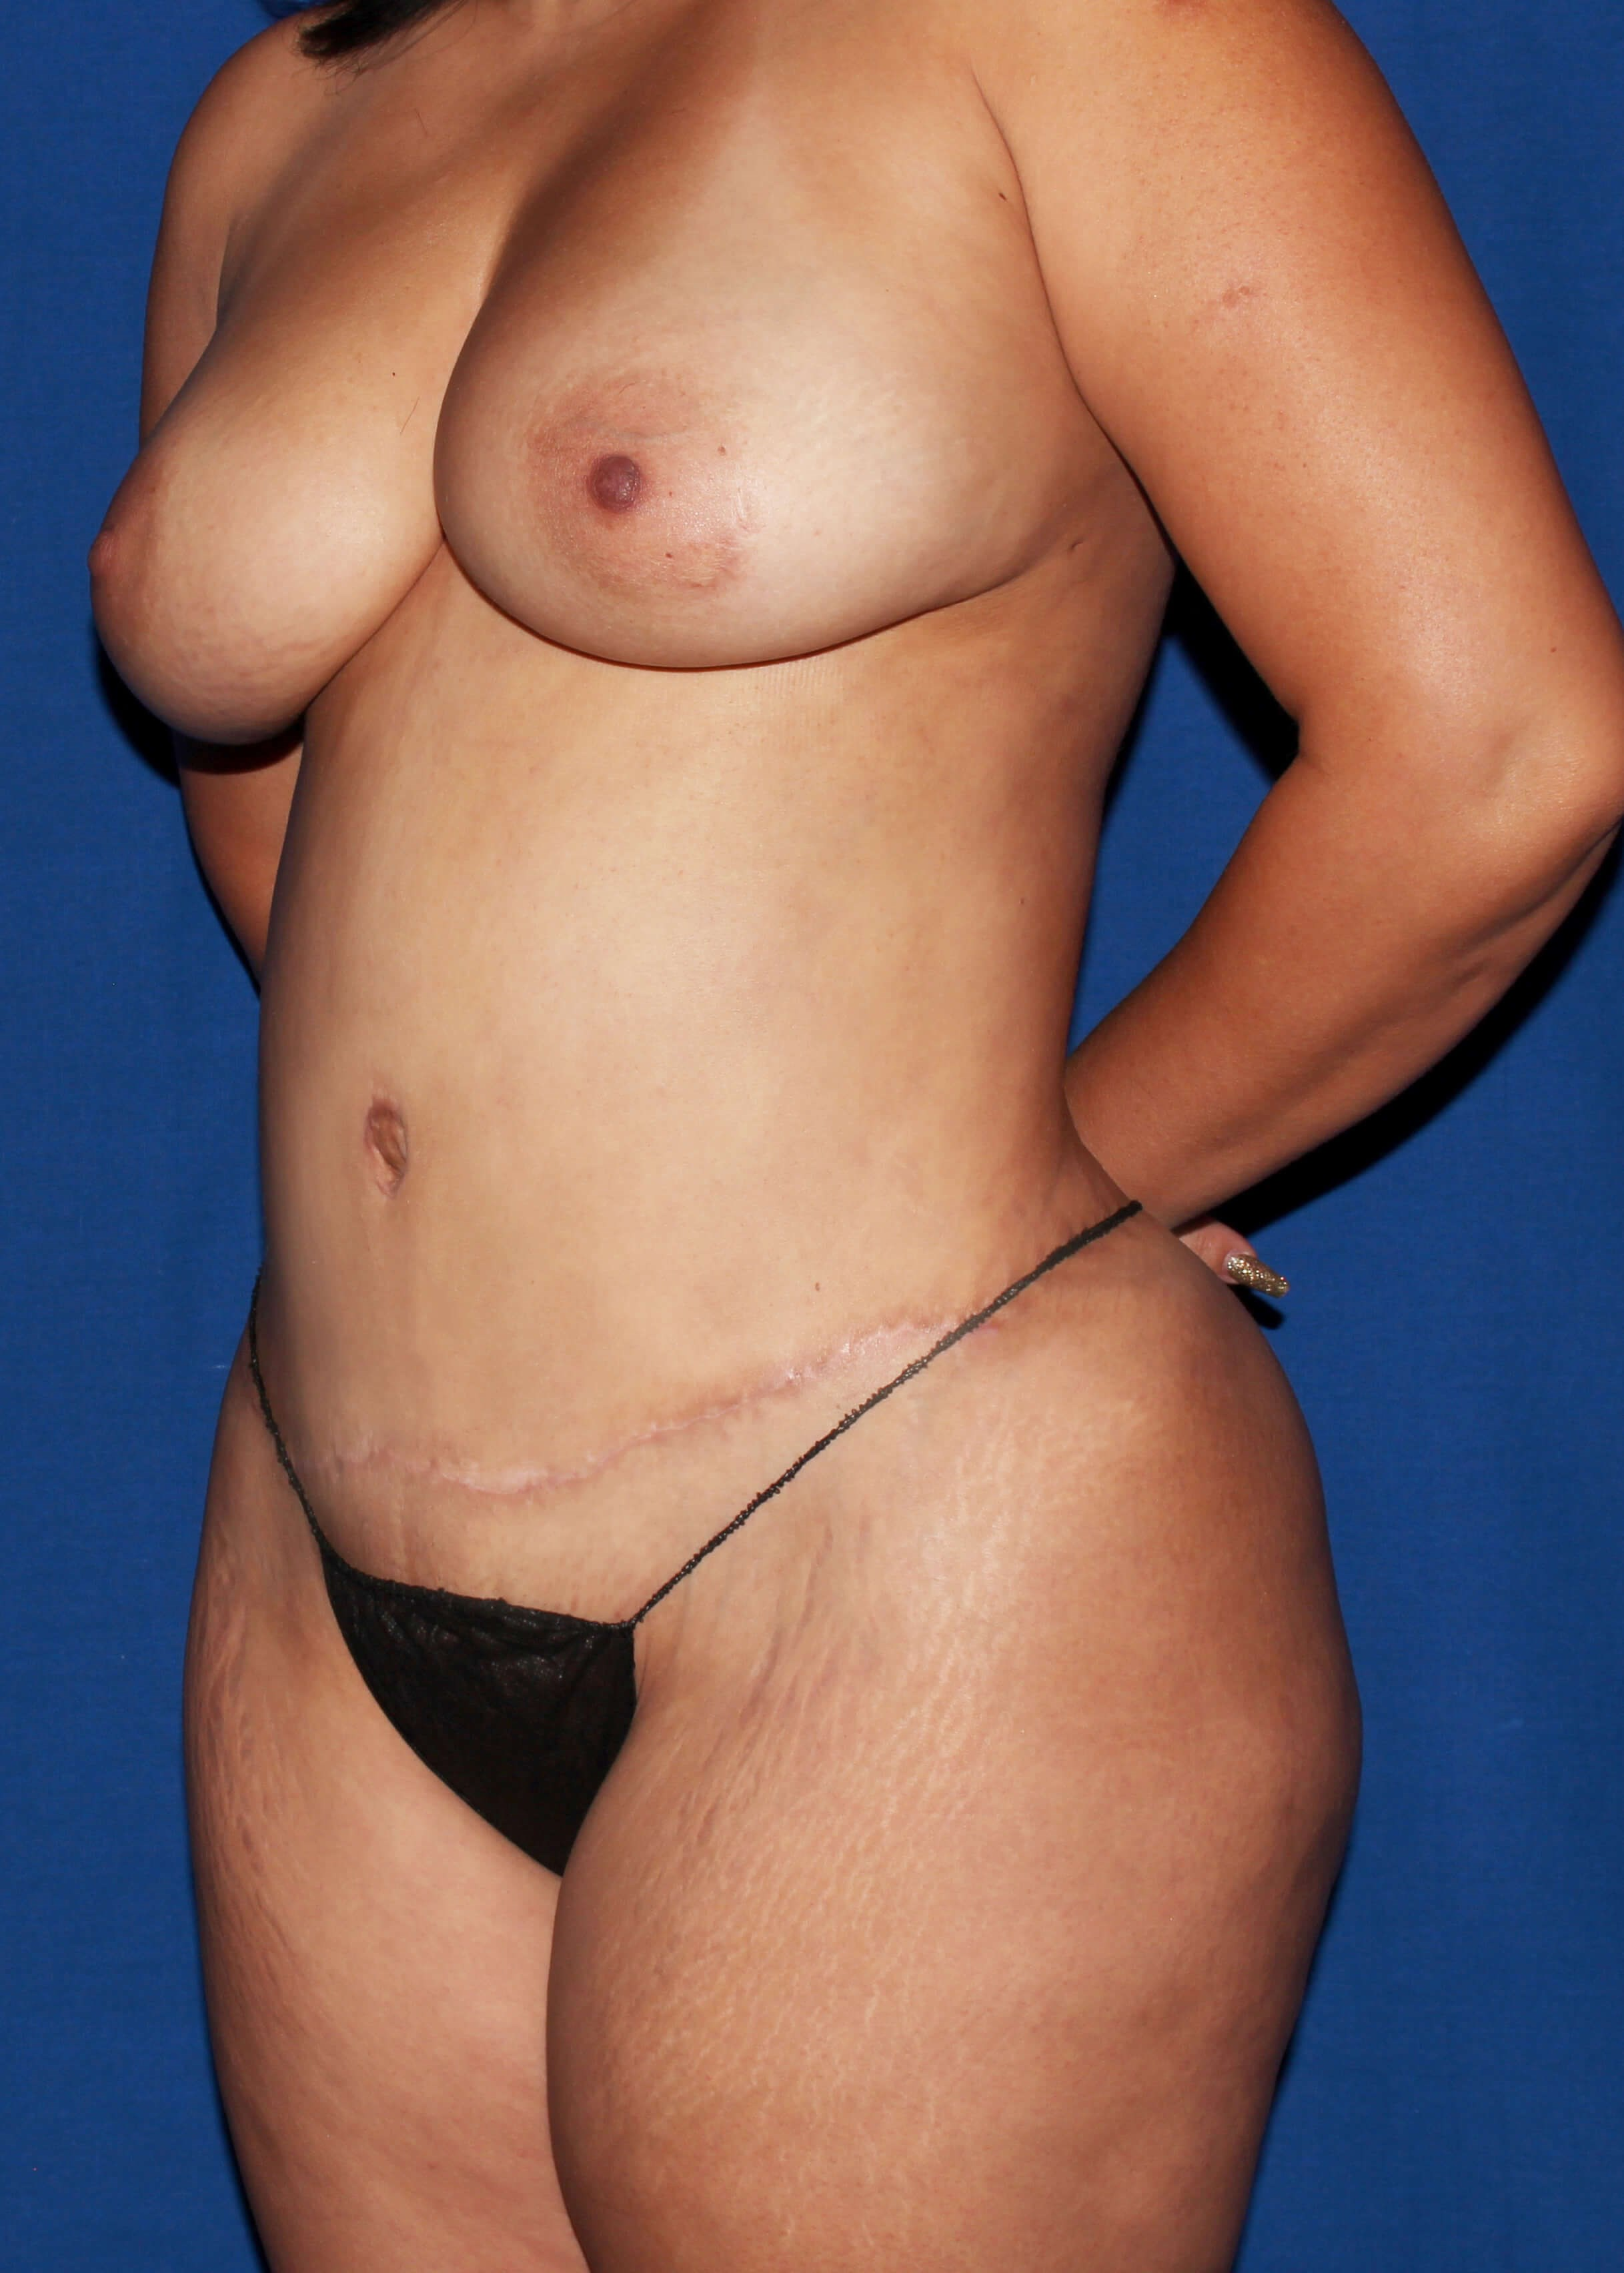 After Tummy Tuck - Left Oblique View